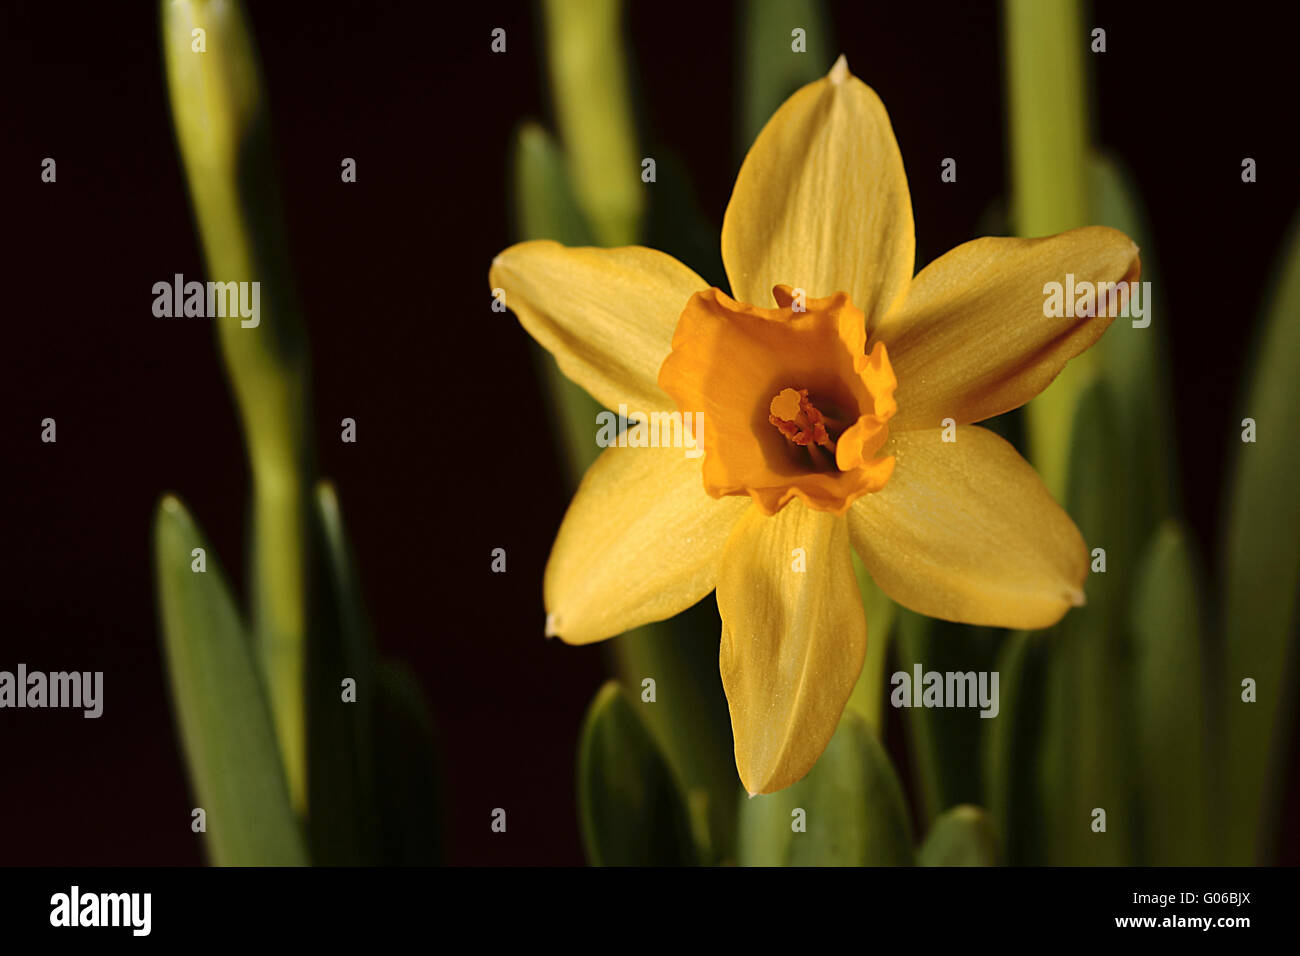 Yellow narcissus - Stock Image